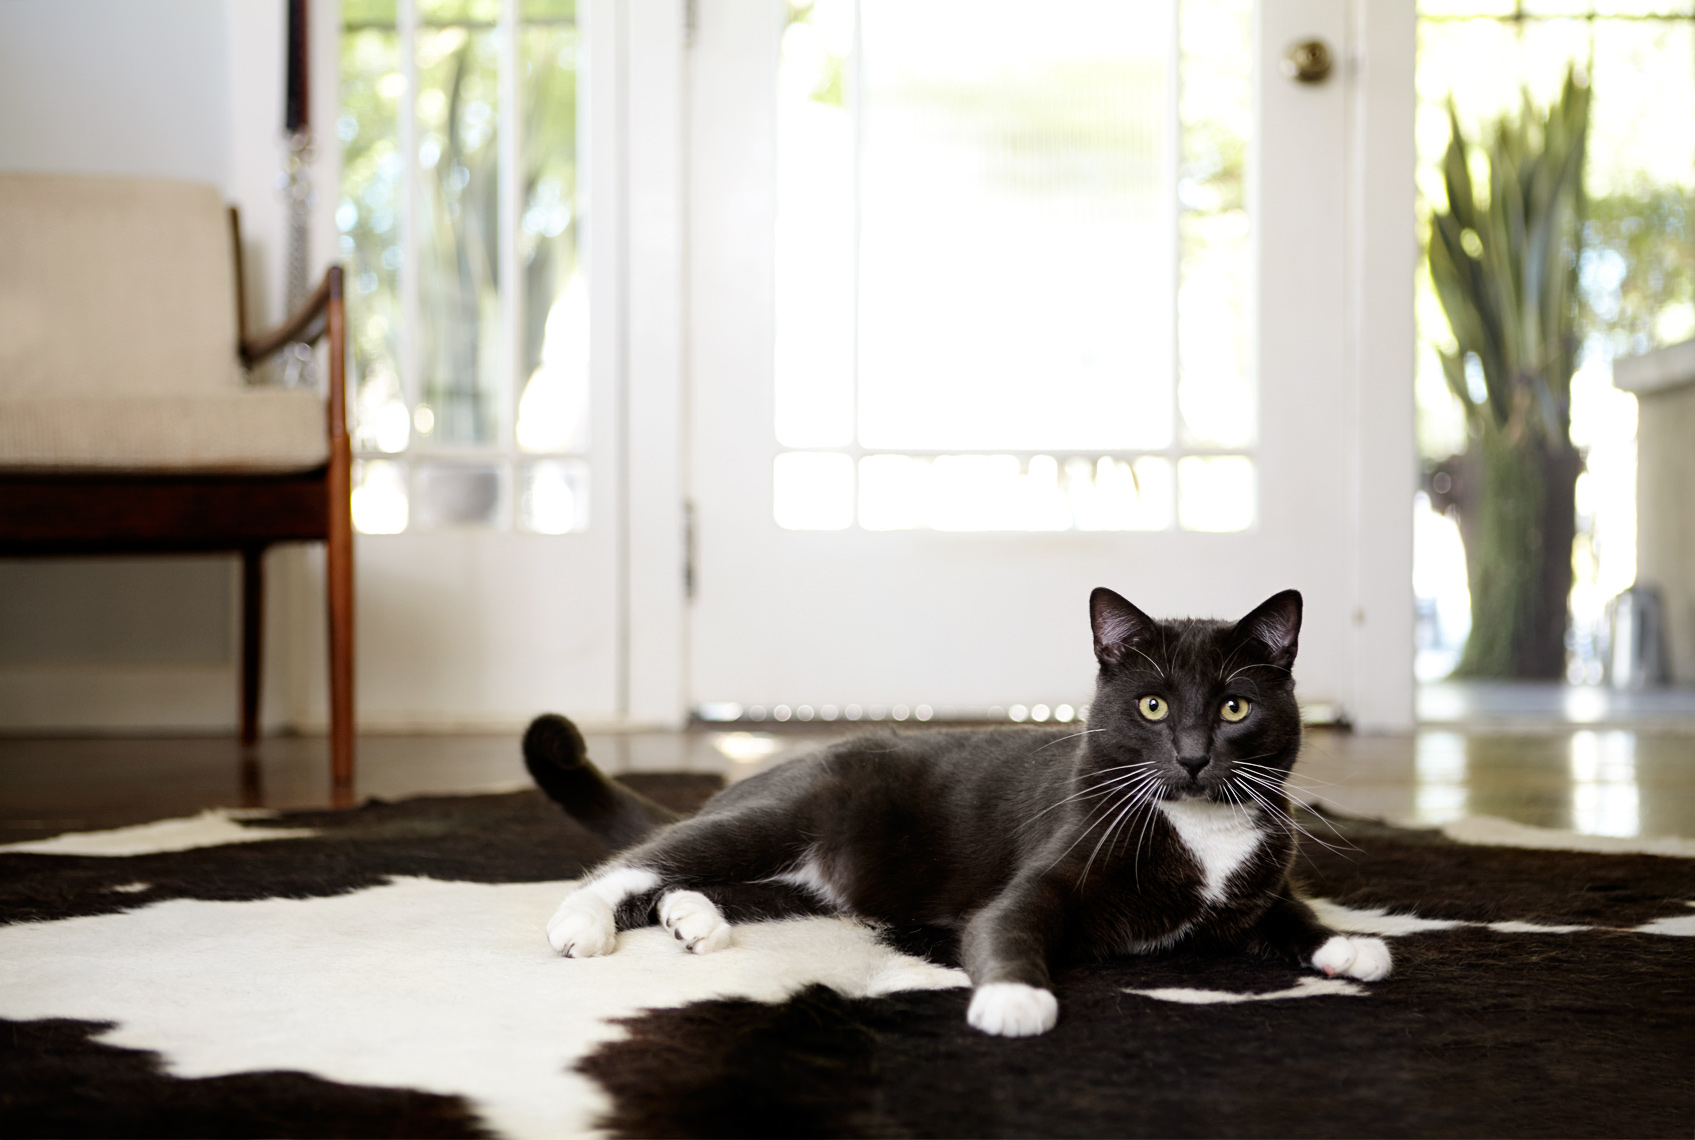 Cat on rug at entry way